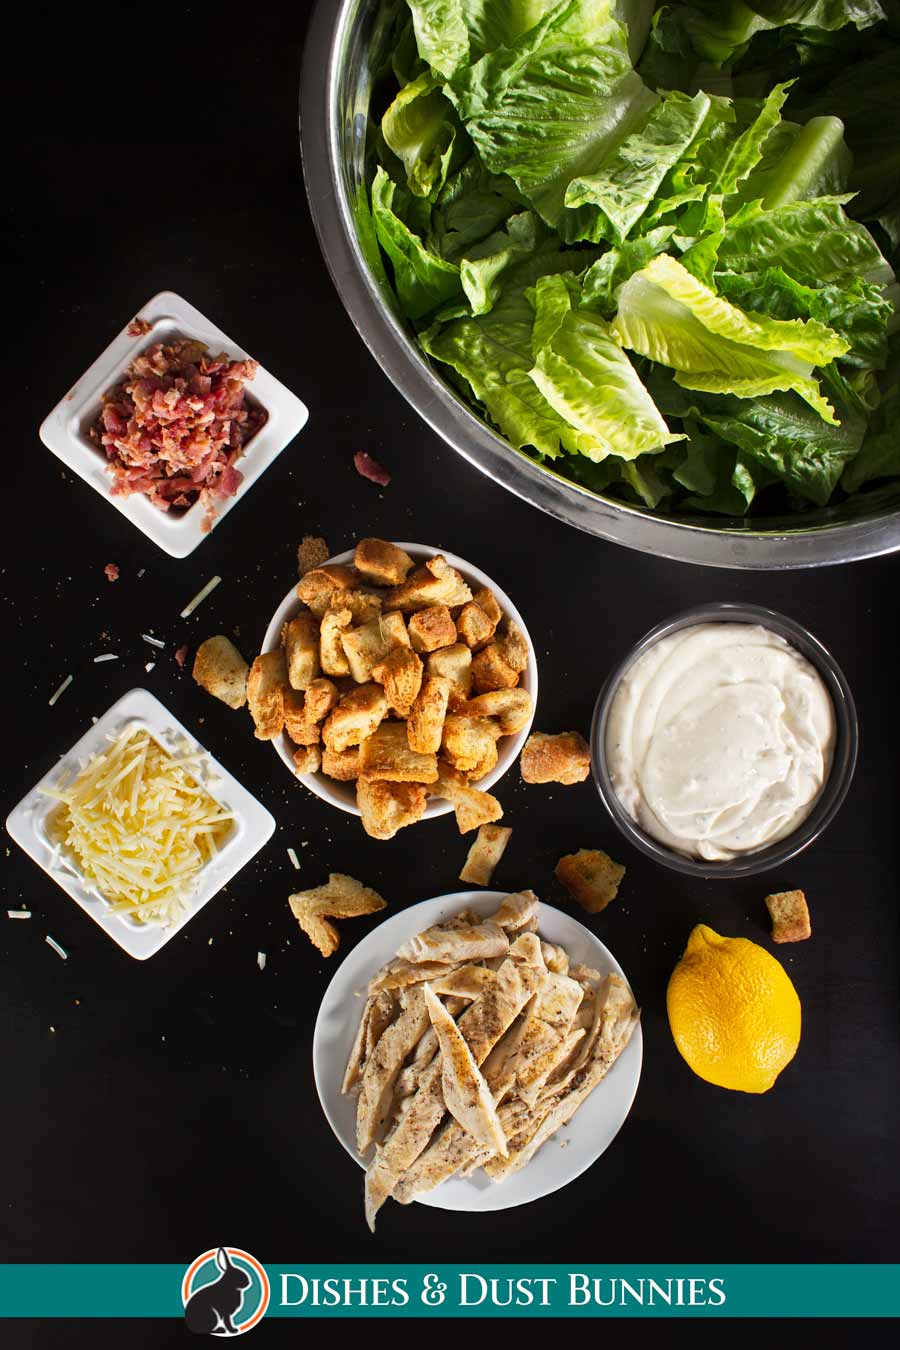 Croutons with other ingredients for Ceasar salad